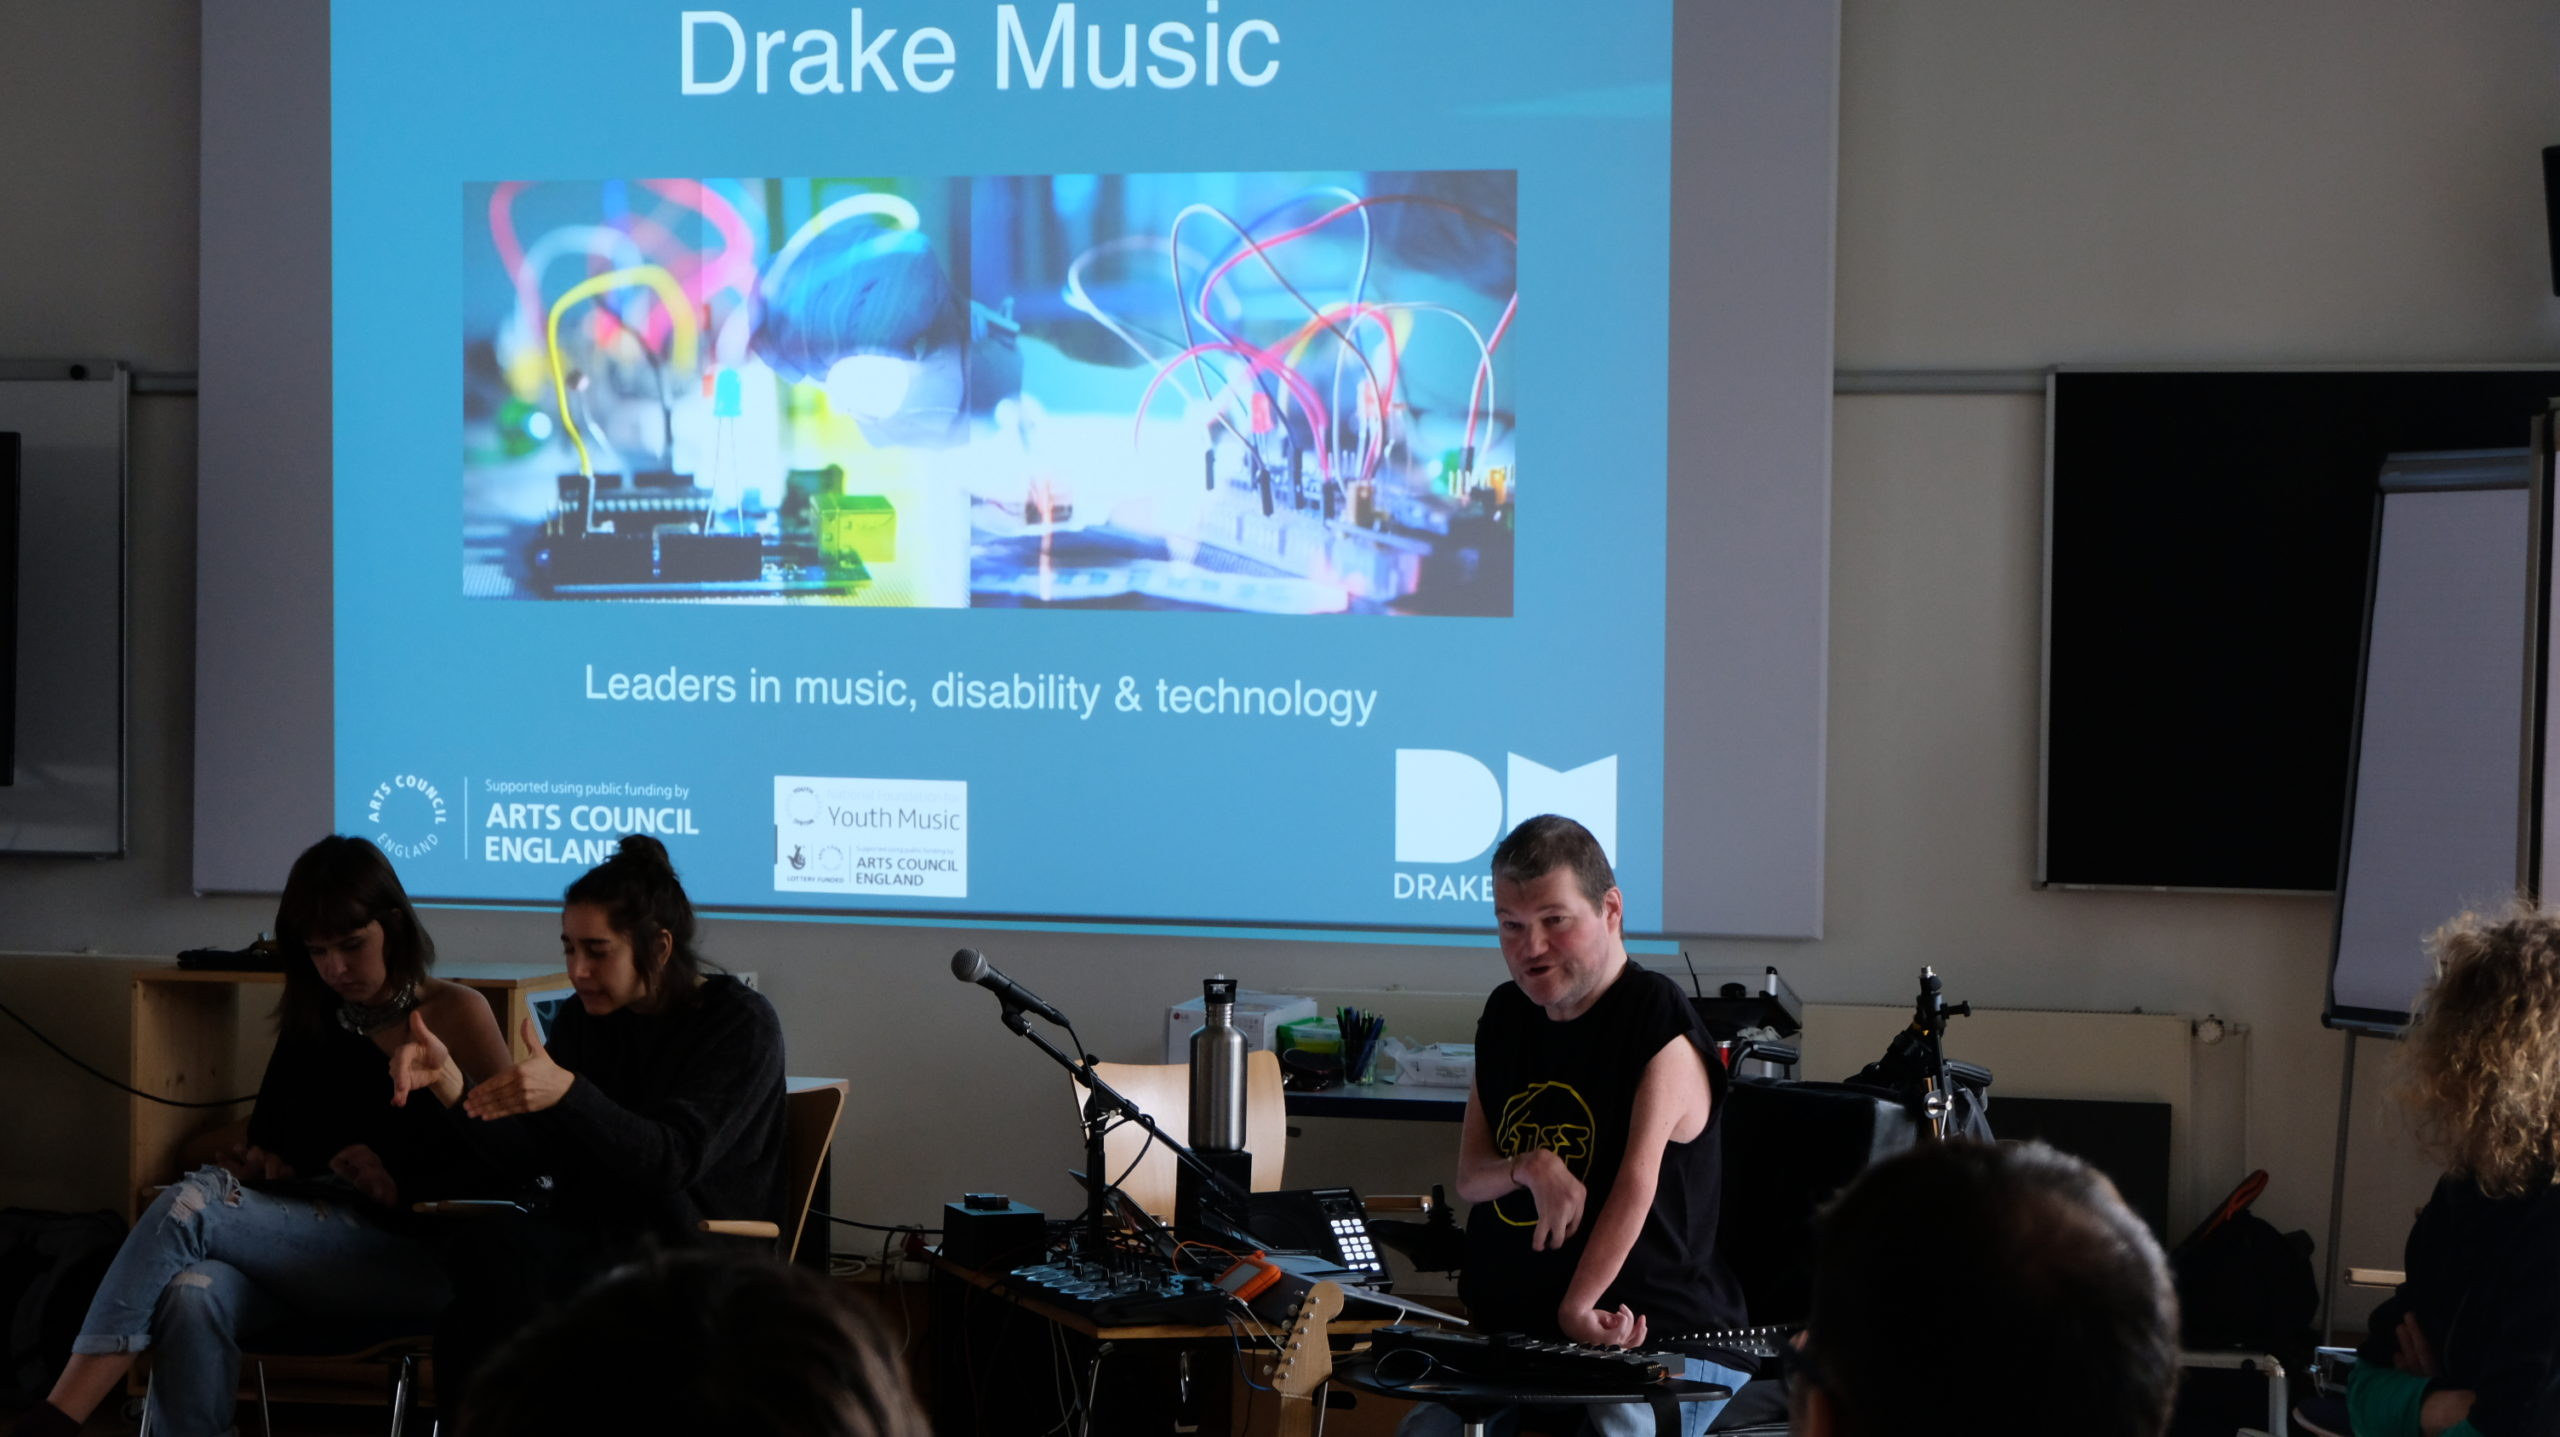 Wheelchair user presenting to a crowd whilst sat in front of music technology equipment with a projection behind him